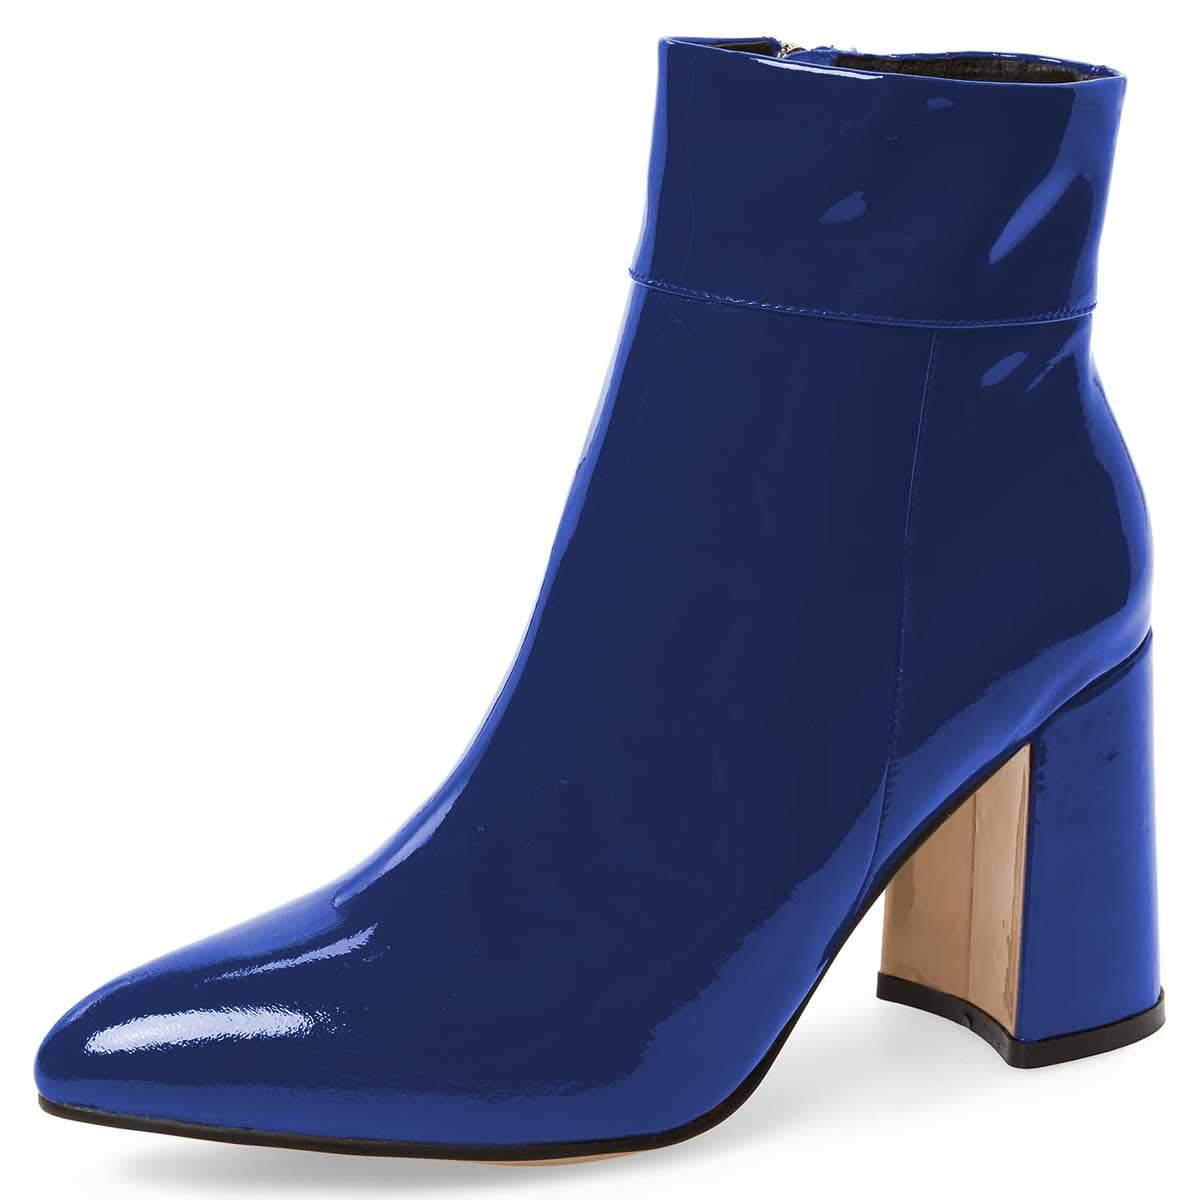 Royal bluee FSJ Women Pointed Toe Block High Heels Ankle Boots Glossy Patent Leather Party Dress Booties Size 4-15 US